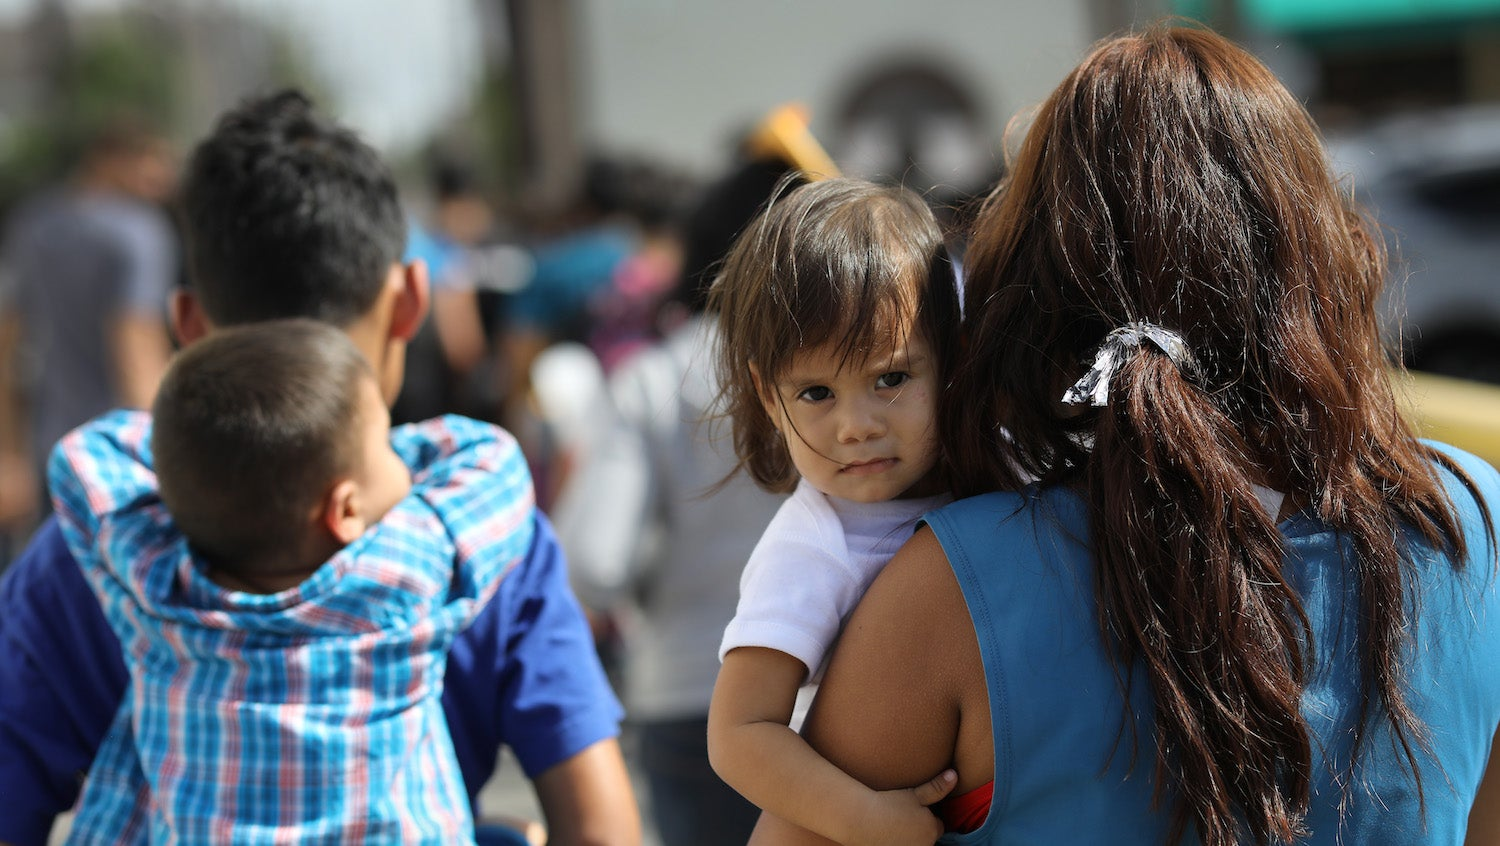 A Family Preparedness Plan helps ensure children's wellbeing in the event of family separation.